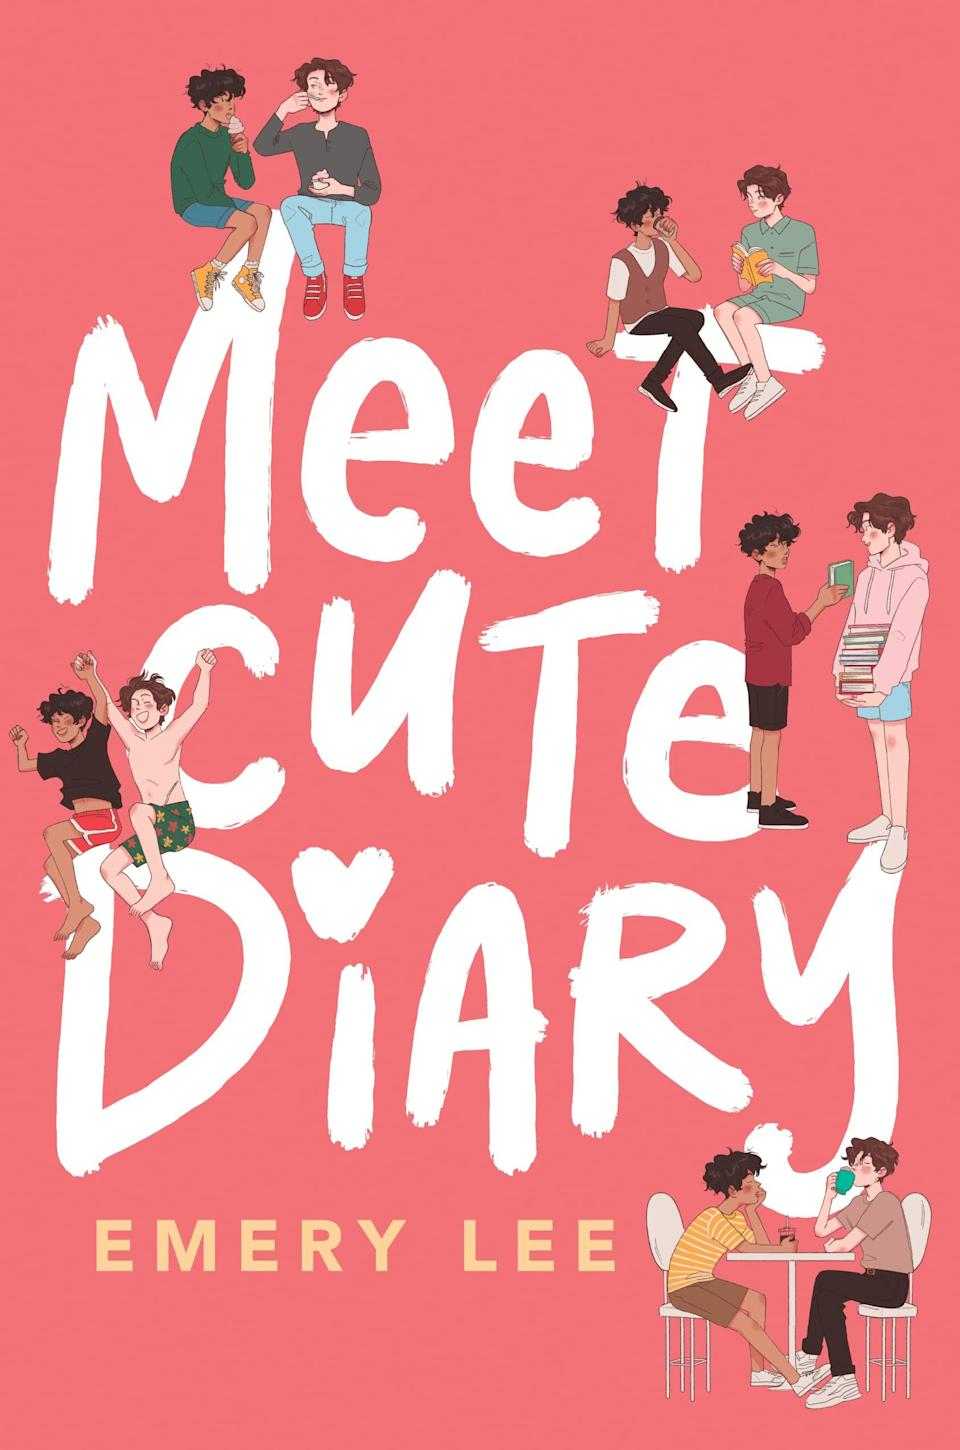 <p>In Emery Lee's <span><strong>Meet Cute Diary</strong></span>, Noah runs a blog where he collects stories of trans romances and happily-ever-afters. The problem is, they're all fake - they're Noah's own wishful thinking. When an anonymous blogger exposes the blog as lies, Noah tries to salvage his reputation by proving that the stories are true, and he recruits Drew to help him out. What starts as fake-dating, naturally, bleeds into real life, leaving Noah wondering if Drew feels the same way.</p> <p><em>Out May 4</em><br></p>